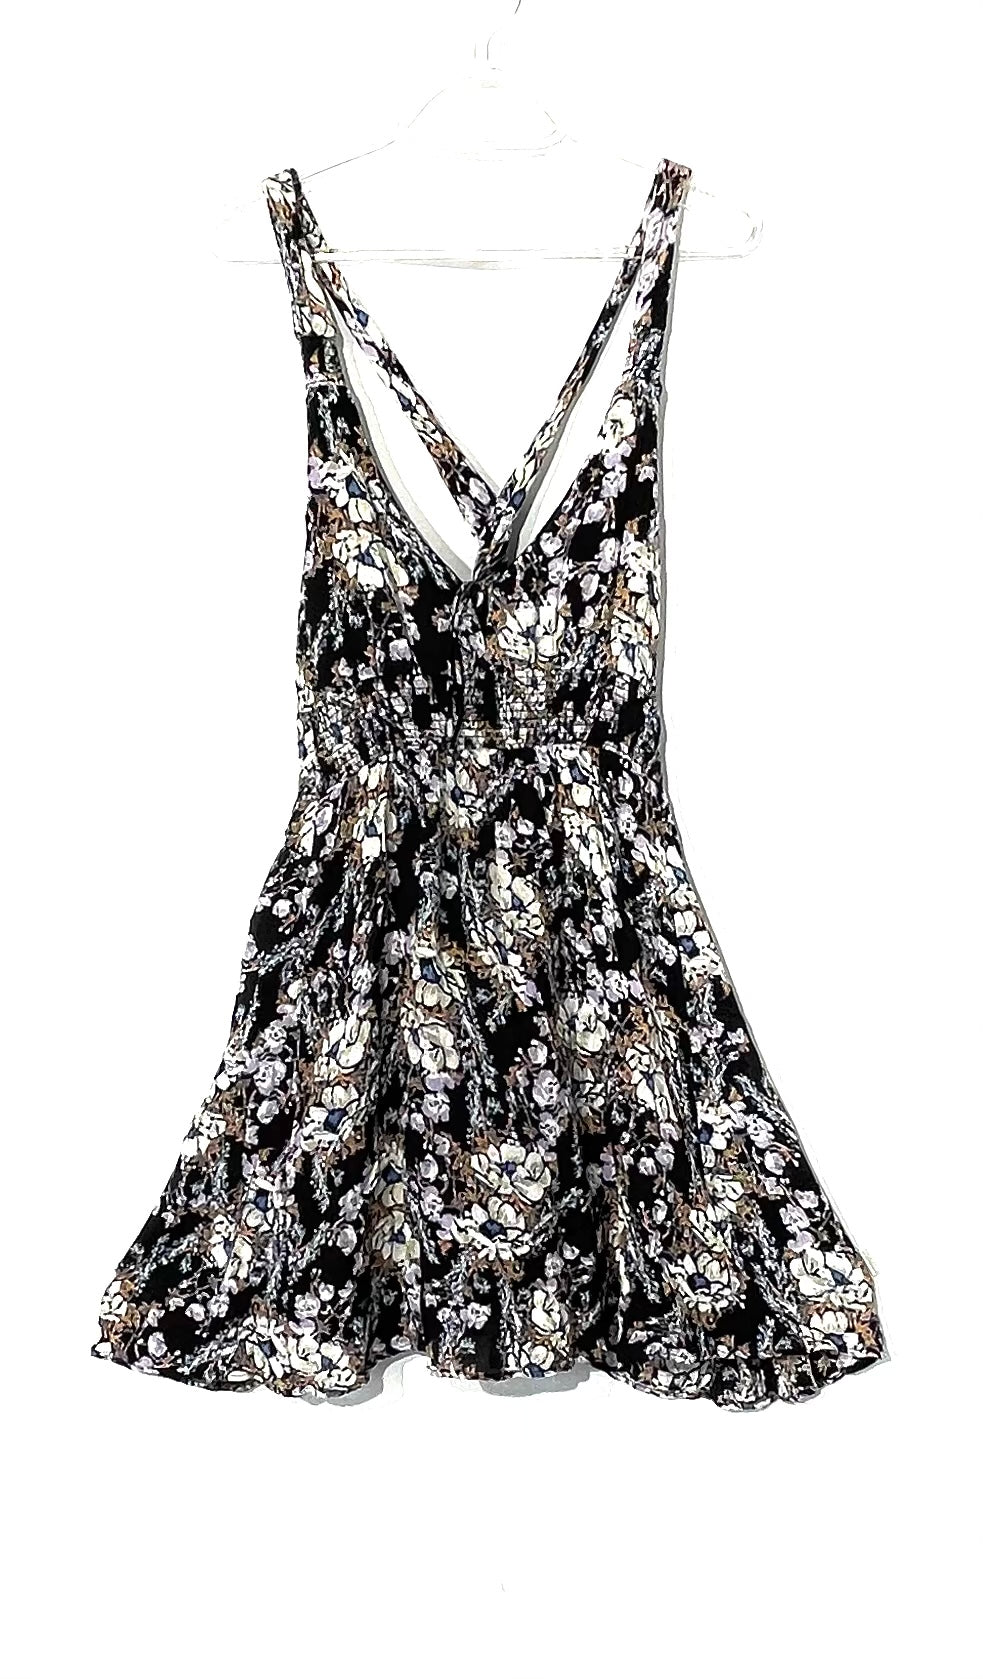 Primary Photo - BRAND: FREE PEOPLE <BR>STYLE: DRESS SHORT SLEEVELESS<BR>COLOR: FLORAL <BR>SIZE: L <BR>SKU: 262-26241-44385<BR>MORE COLORFUL THAN PHOTOS SHOW